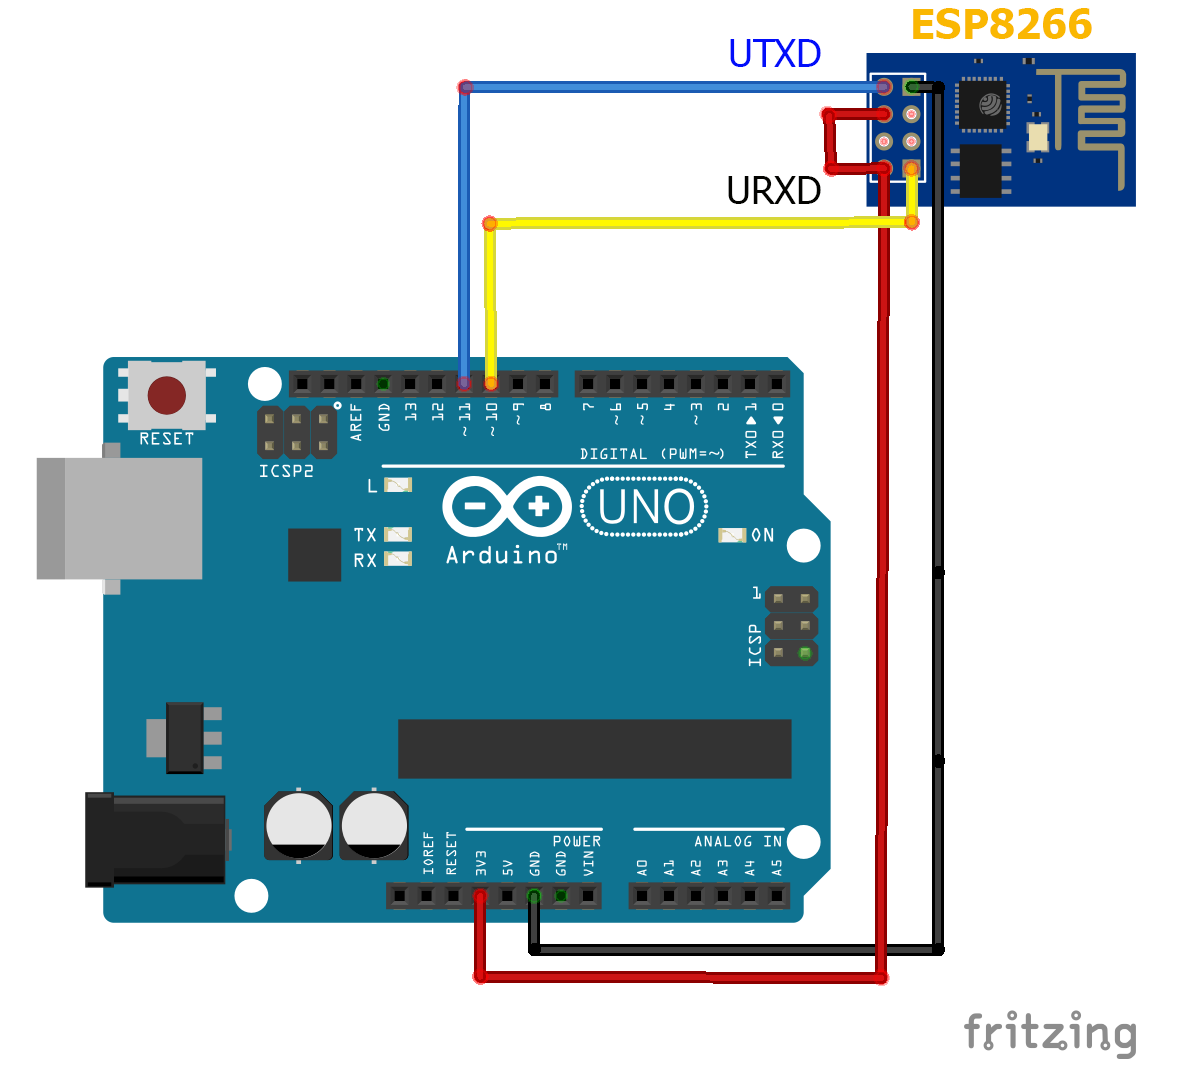 dht11 wiring diagram esp8266arduinouno wiringdiagram png an error occurred